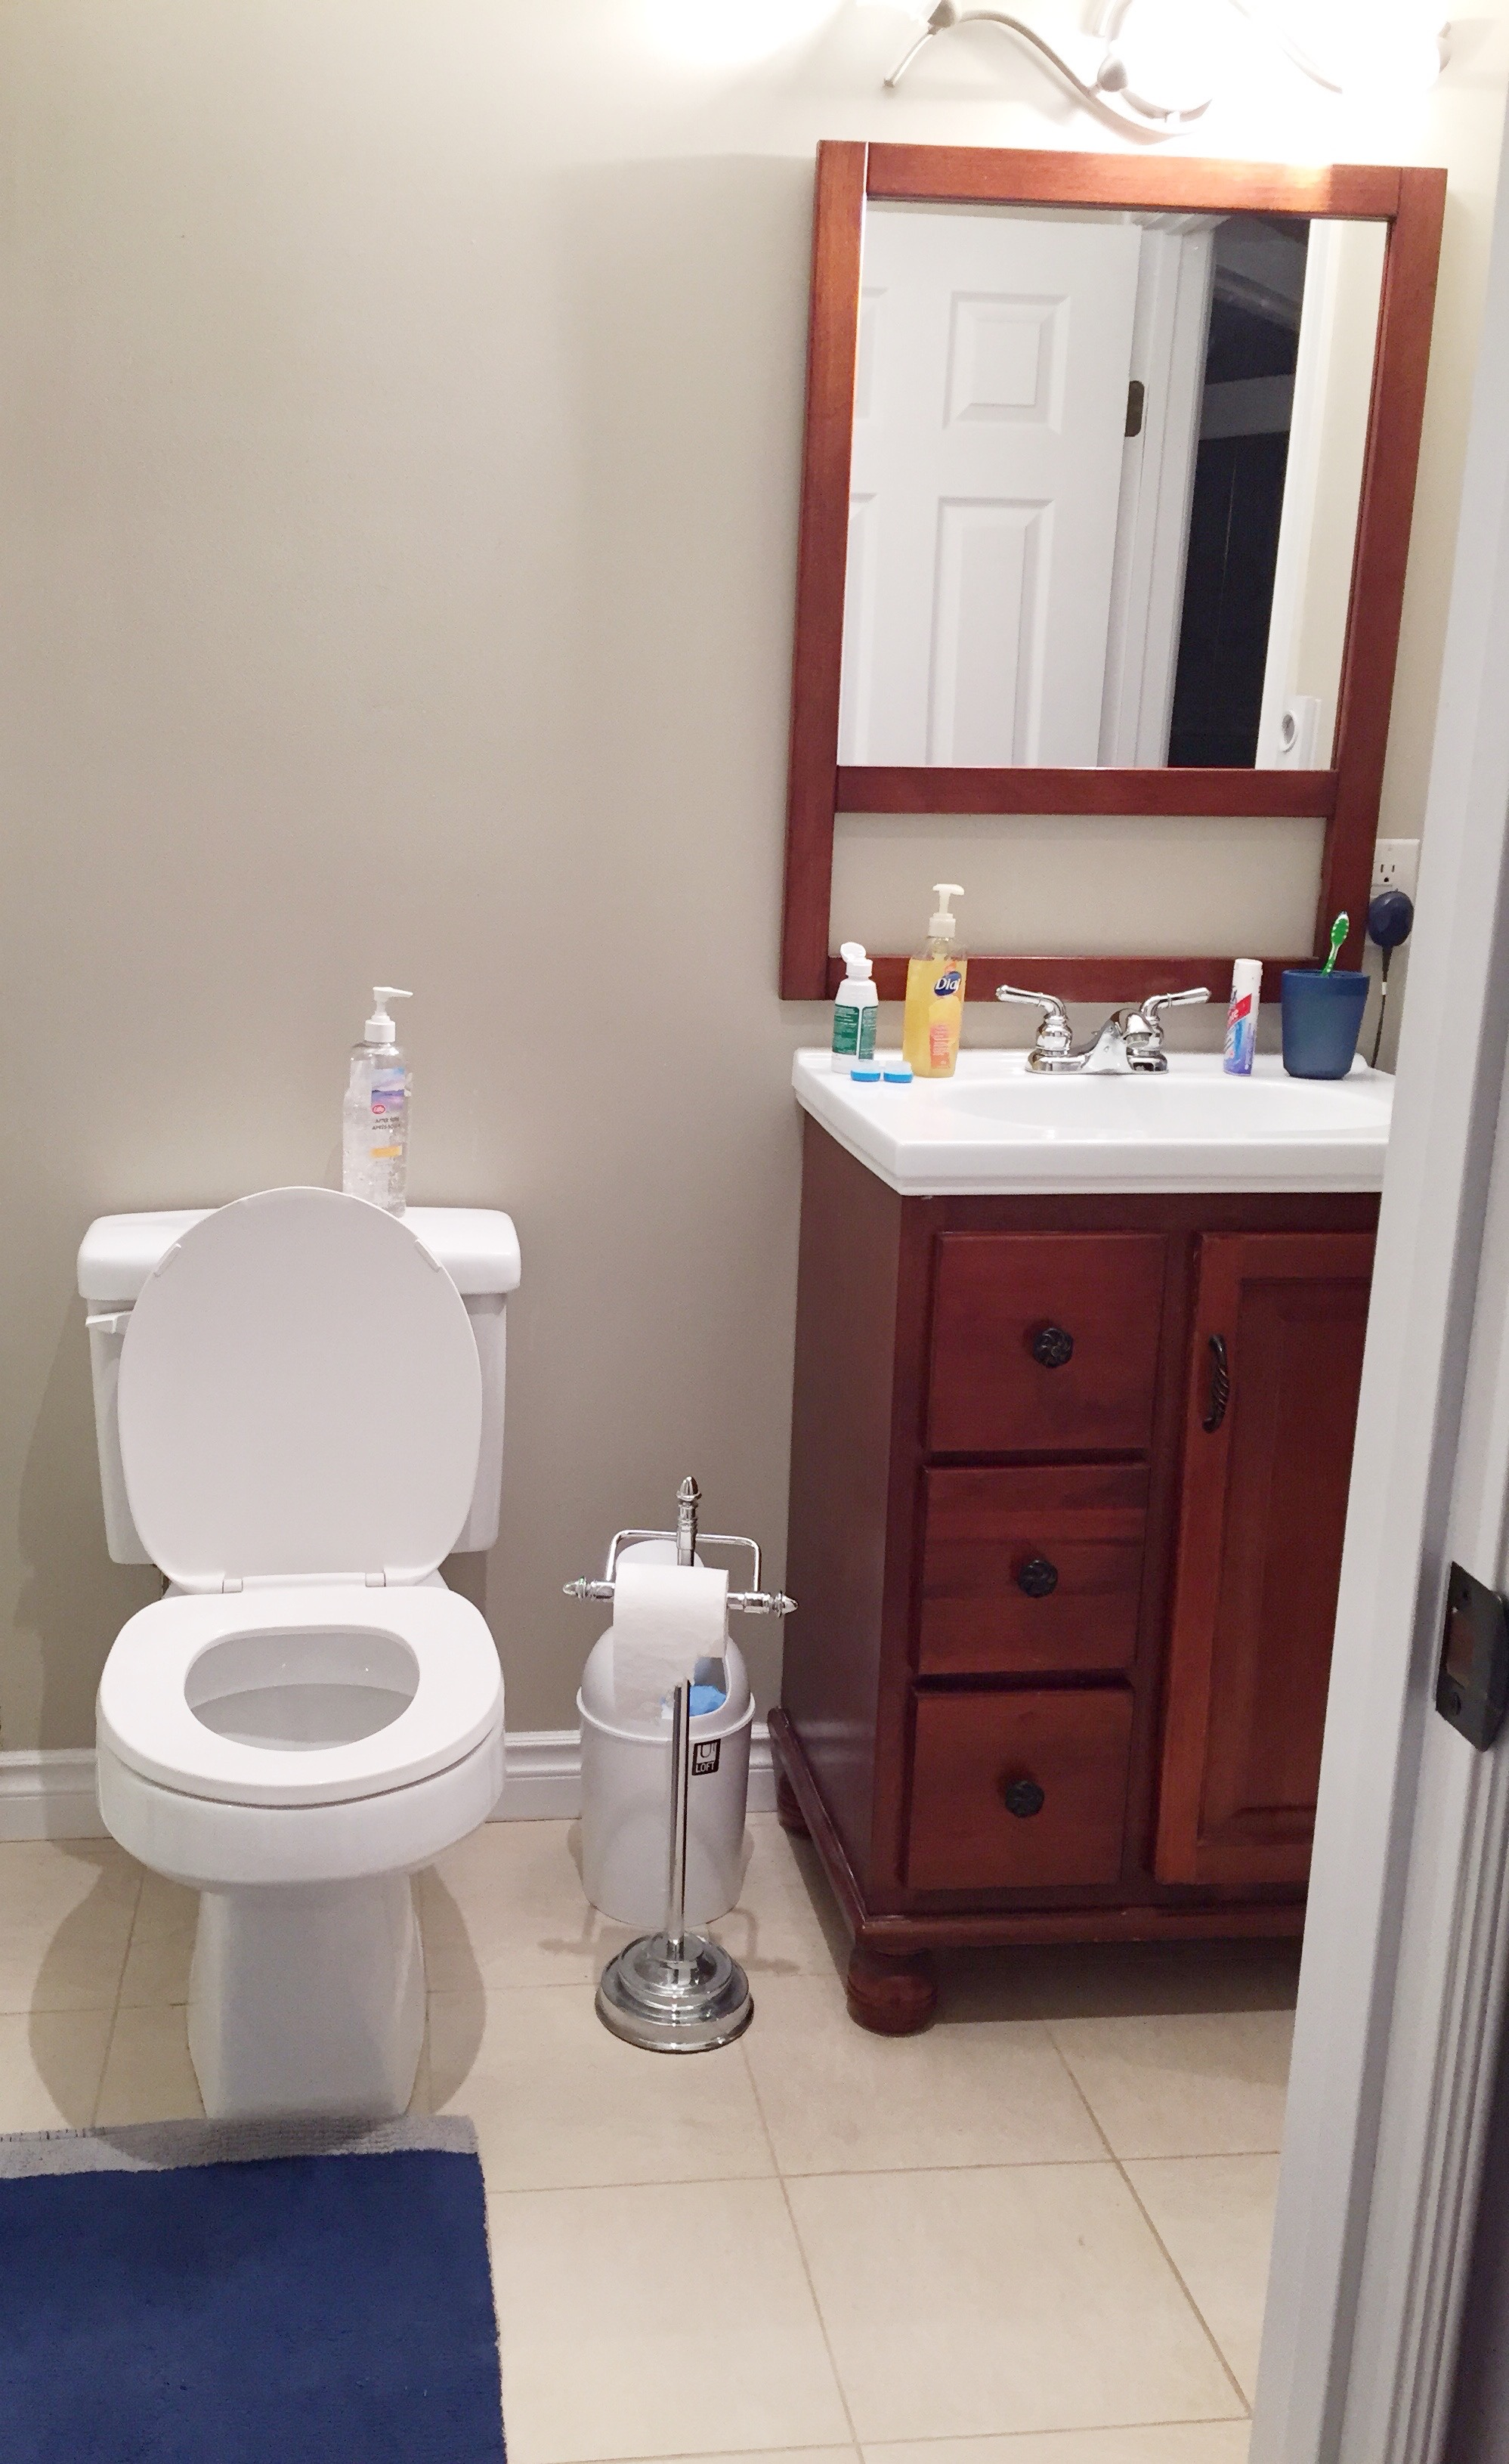 Bathroom vanity seat